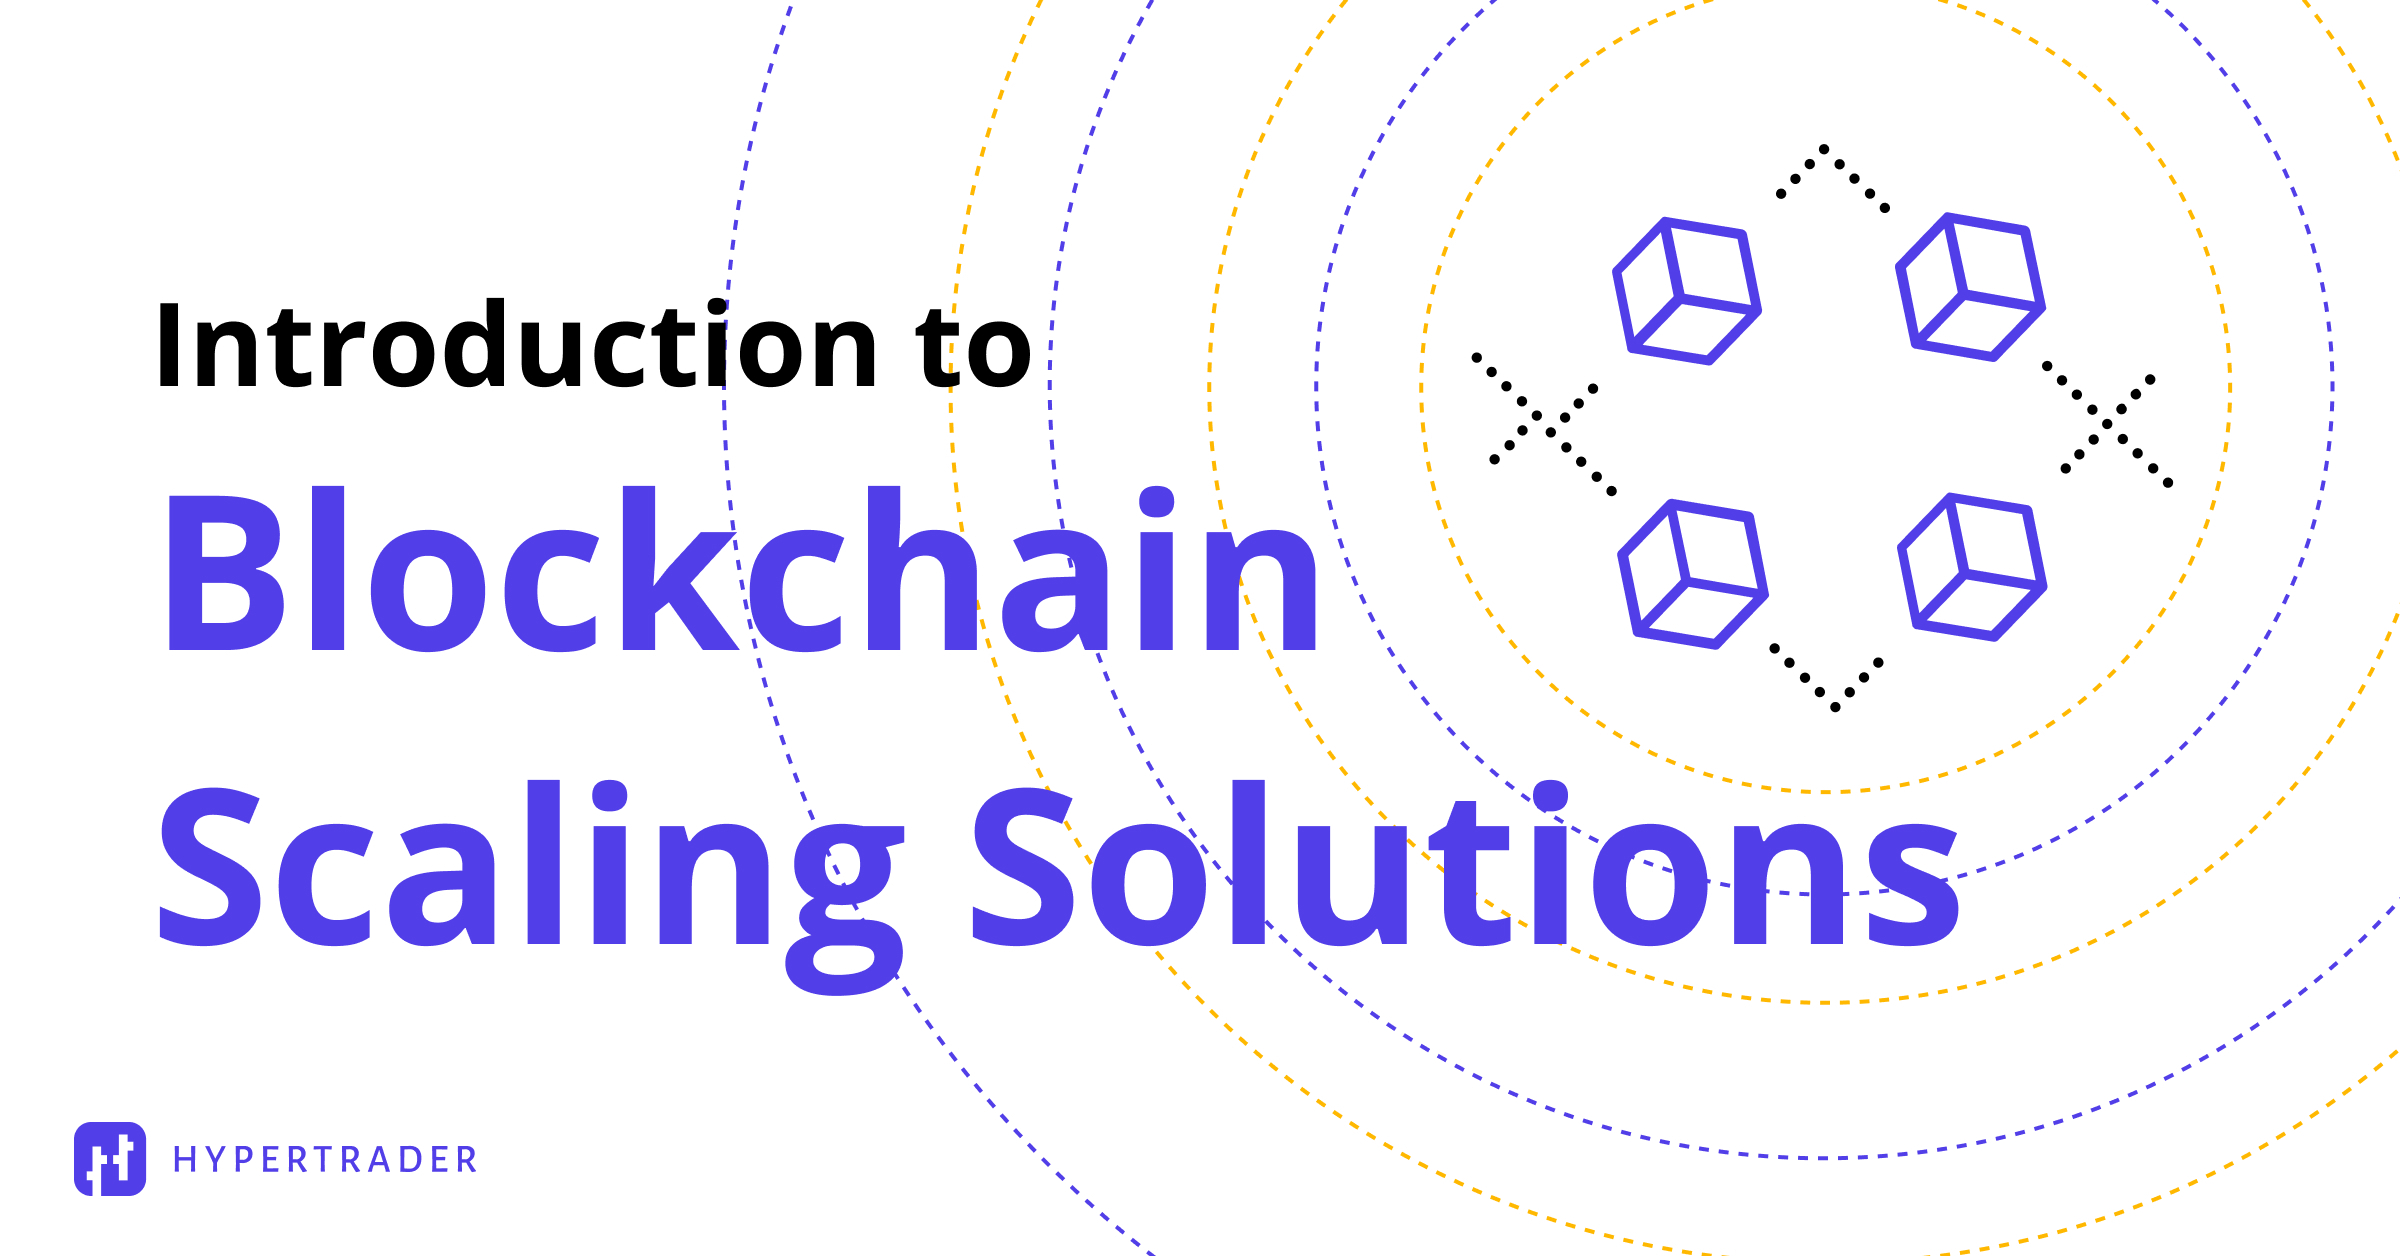 Introduction to Blockchain Scaling Solutions